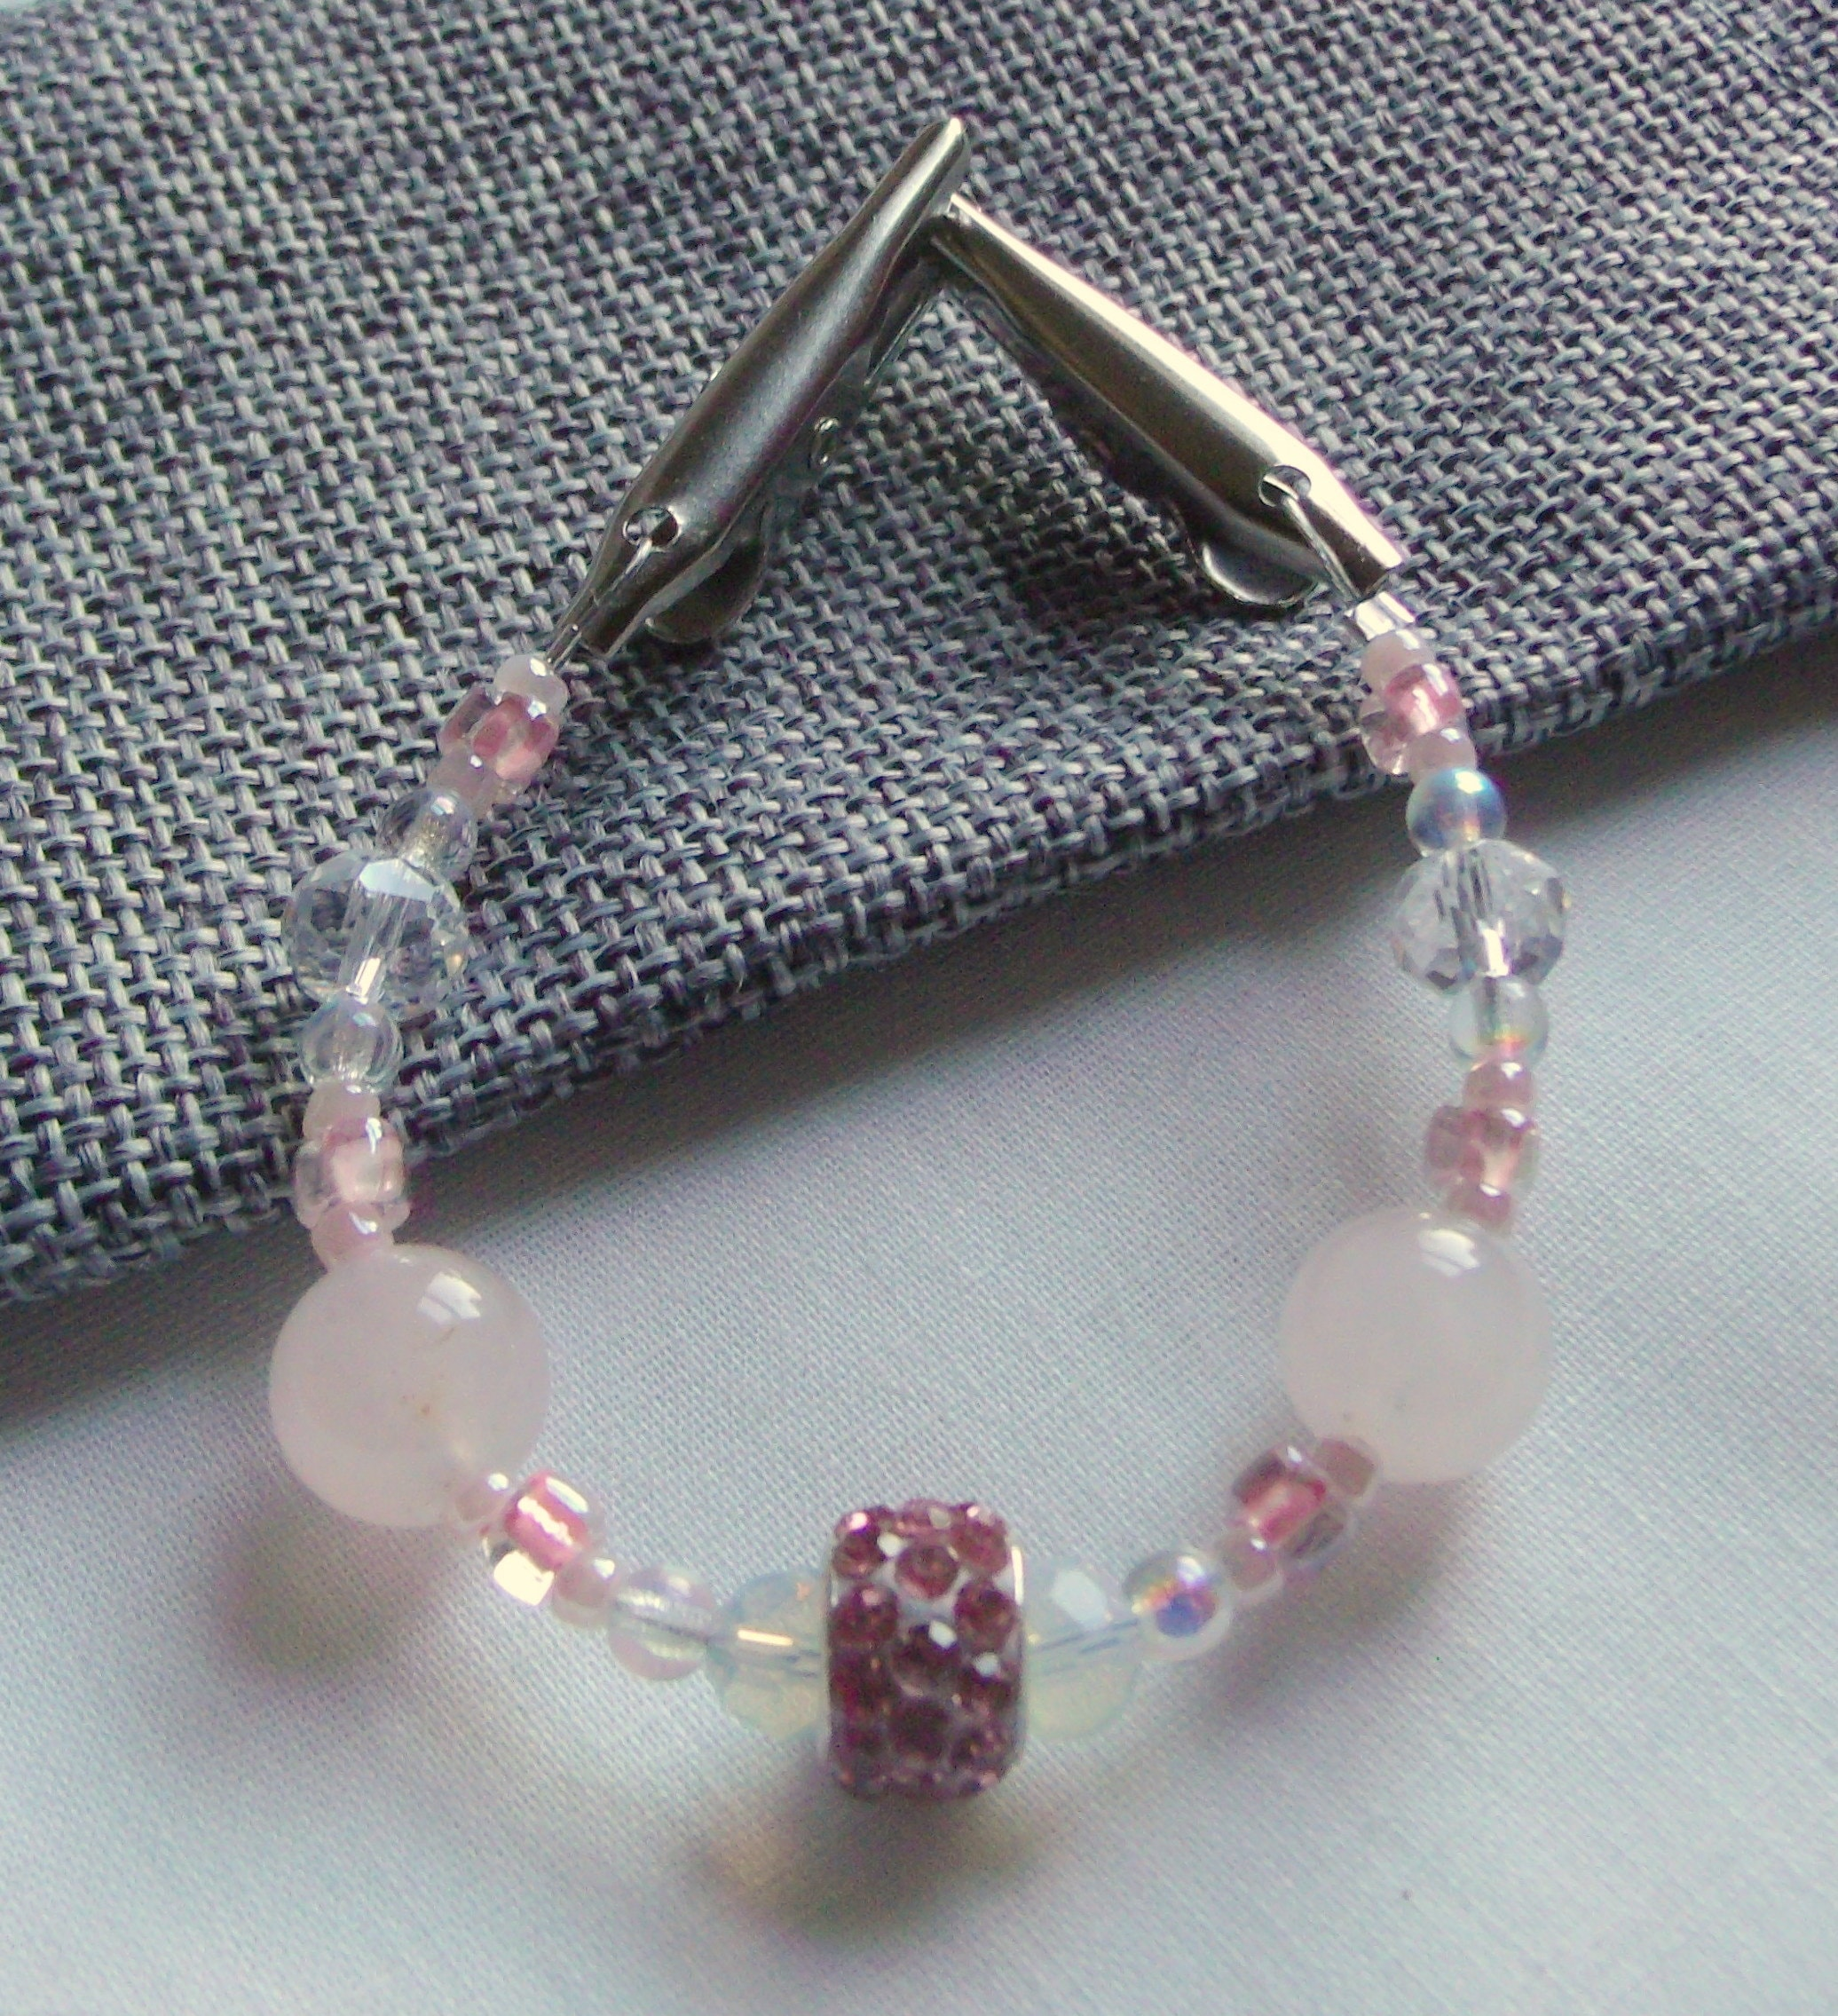 6 Sweater Or Shawl Clip With Elegant Multi Faceted Crystals Rose Quartz Beads Sweater Guard Pashmina Clip 7 Pink Scarf Clip